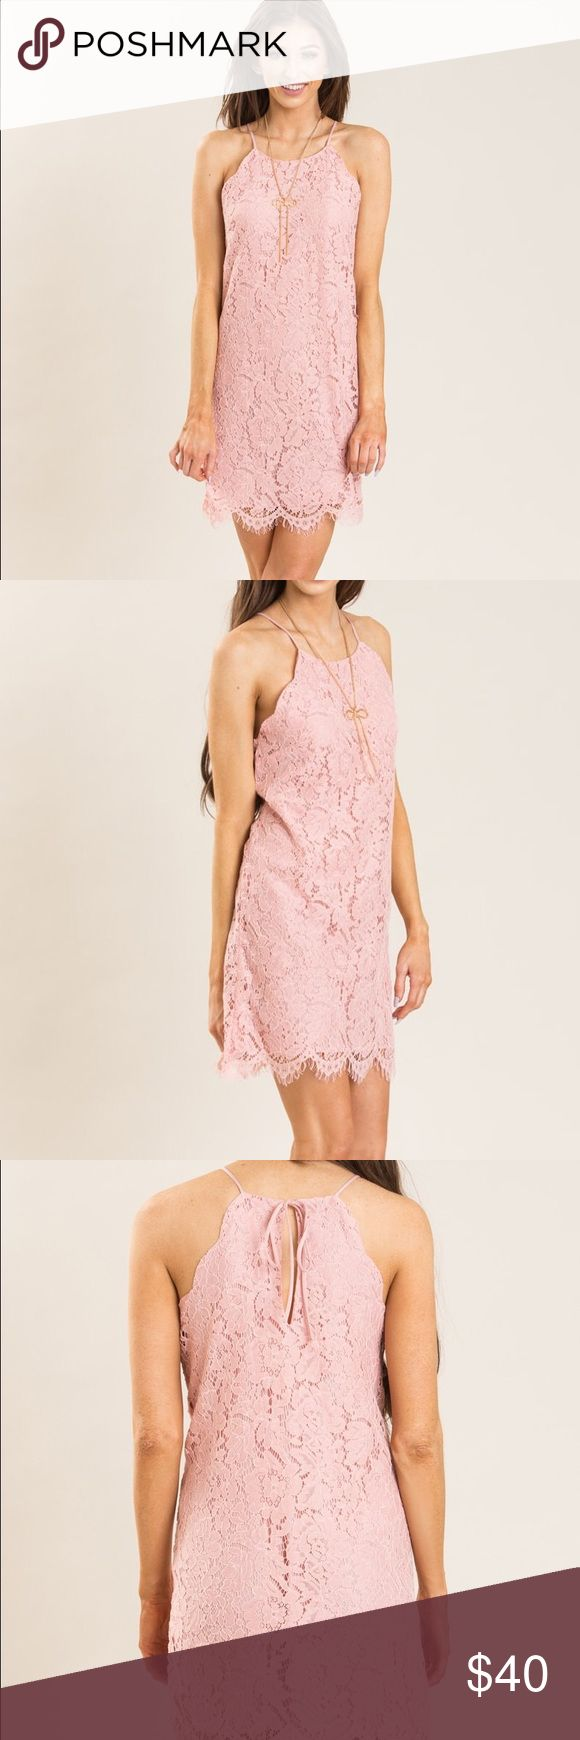 Pink Lace Shift Dress with Scallop Details A cute and chic shift dress with beautiful lace and scallop details. This is a great dress to wear for weddings, dates, and tea parties. Would look great paired with strappy nude heels and delicate necklaces. Brand new and has not been worn ▪️Fully Lined. ▪️60% Nylon 40% Cotton ▪️Lining: 100% Rayon. Everly Dresses Mini